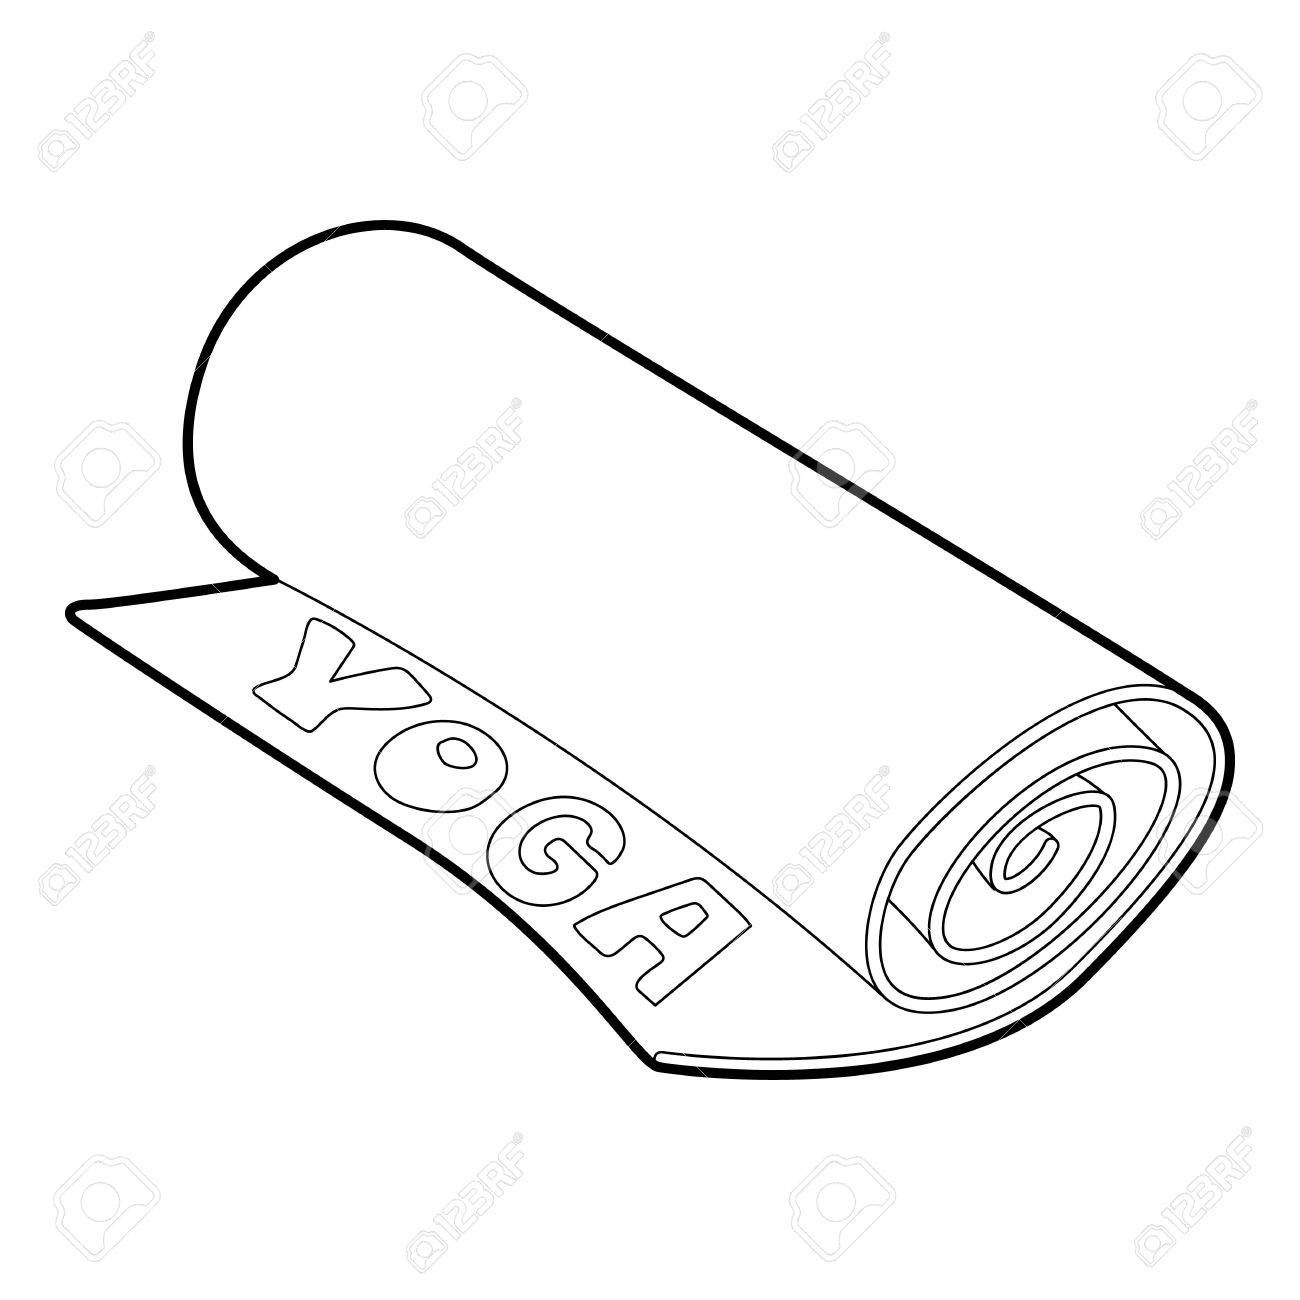 Yoga Mat Icon Outline Style Royalty Free Cliparts Vectors And Stock Illustration Image 71504301